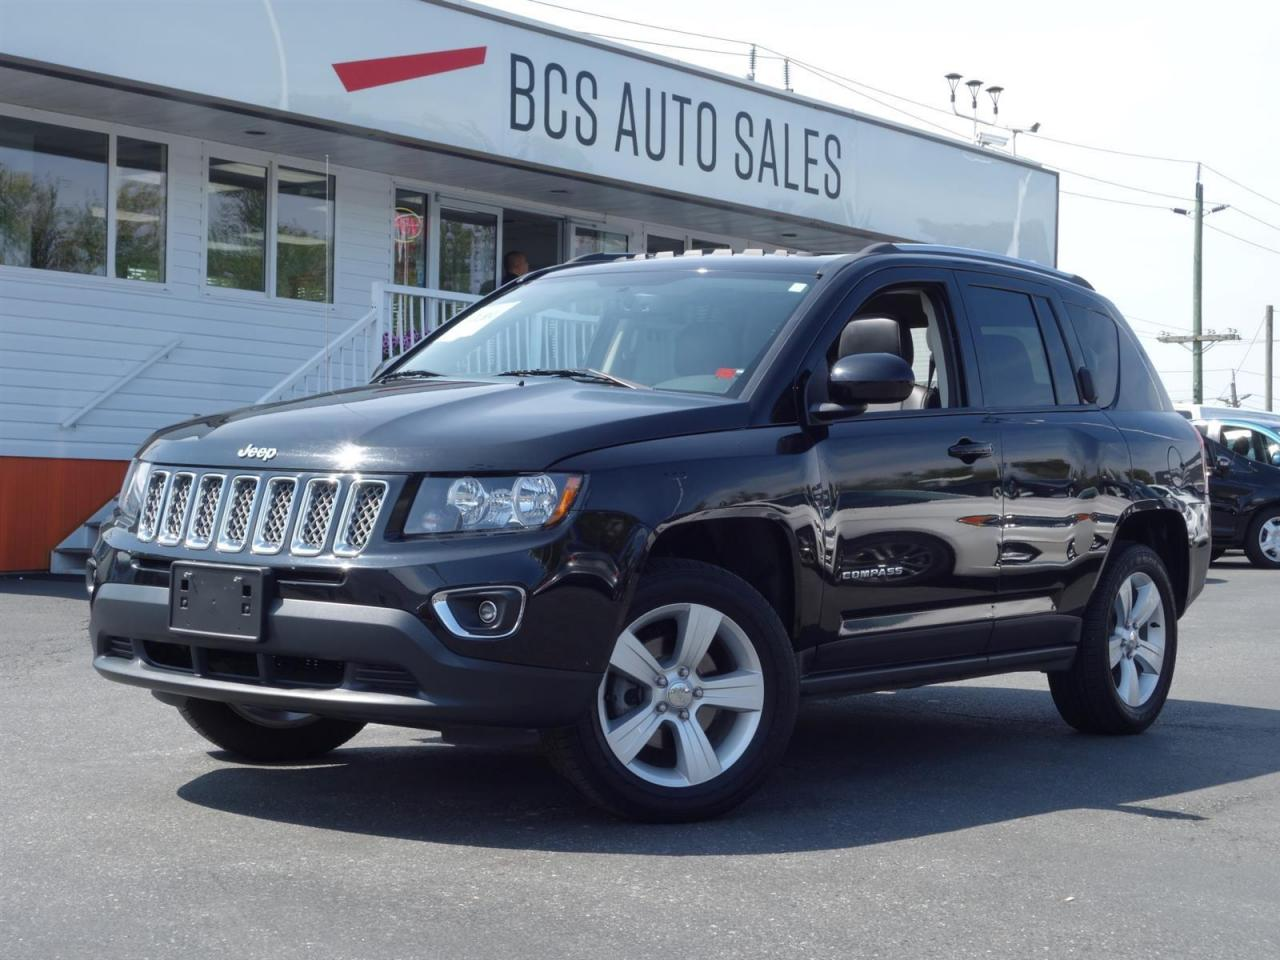 used 2015 jeep compass for sale in vancouver, british columbia carpages.ca